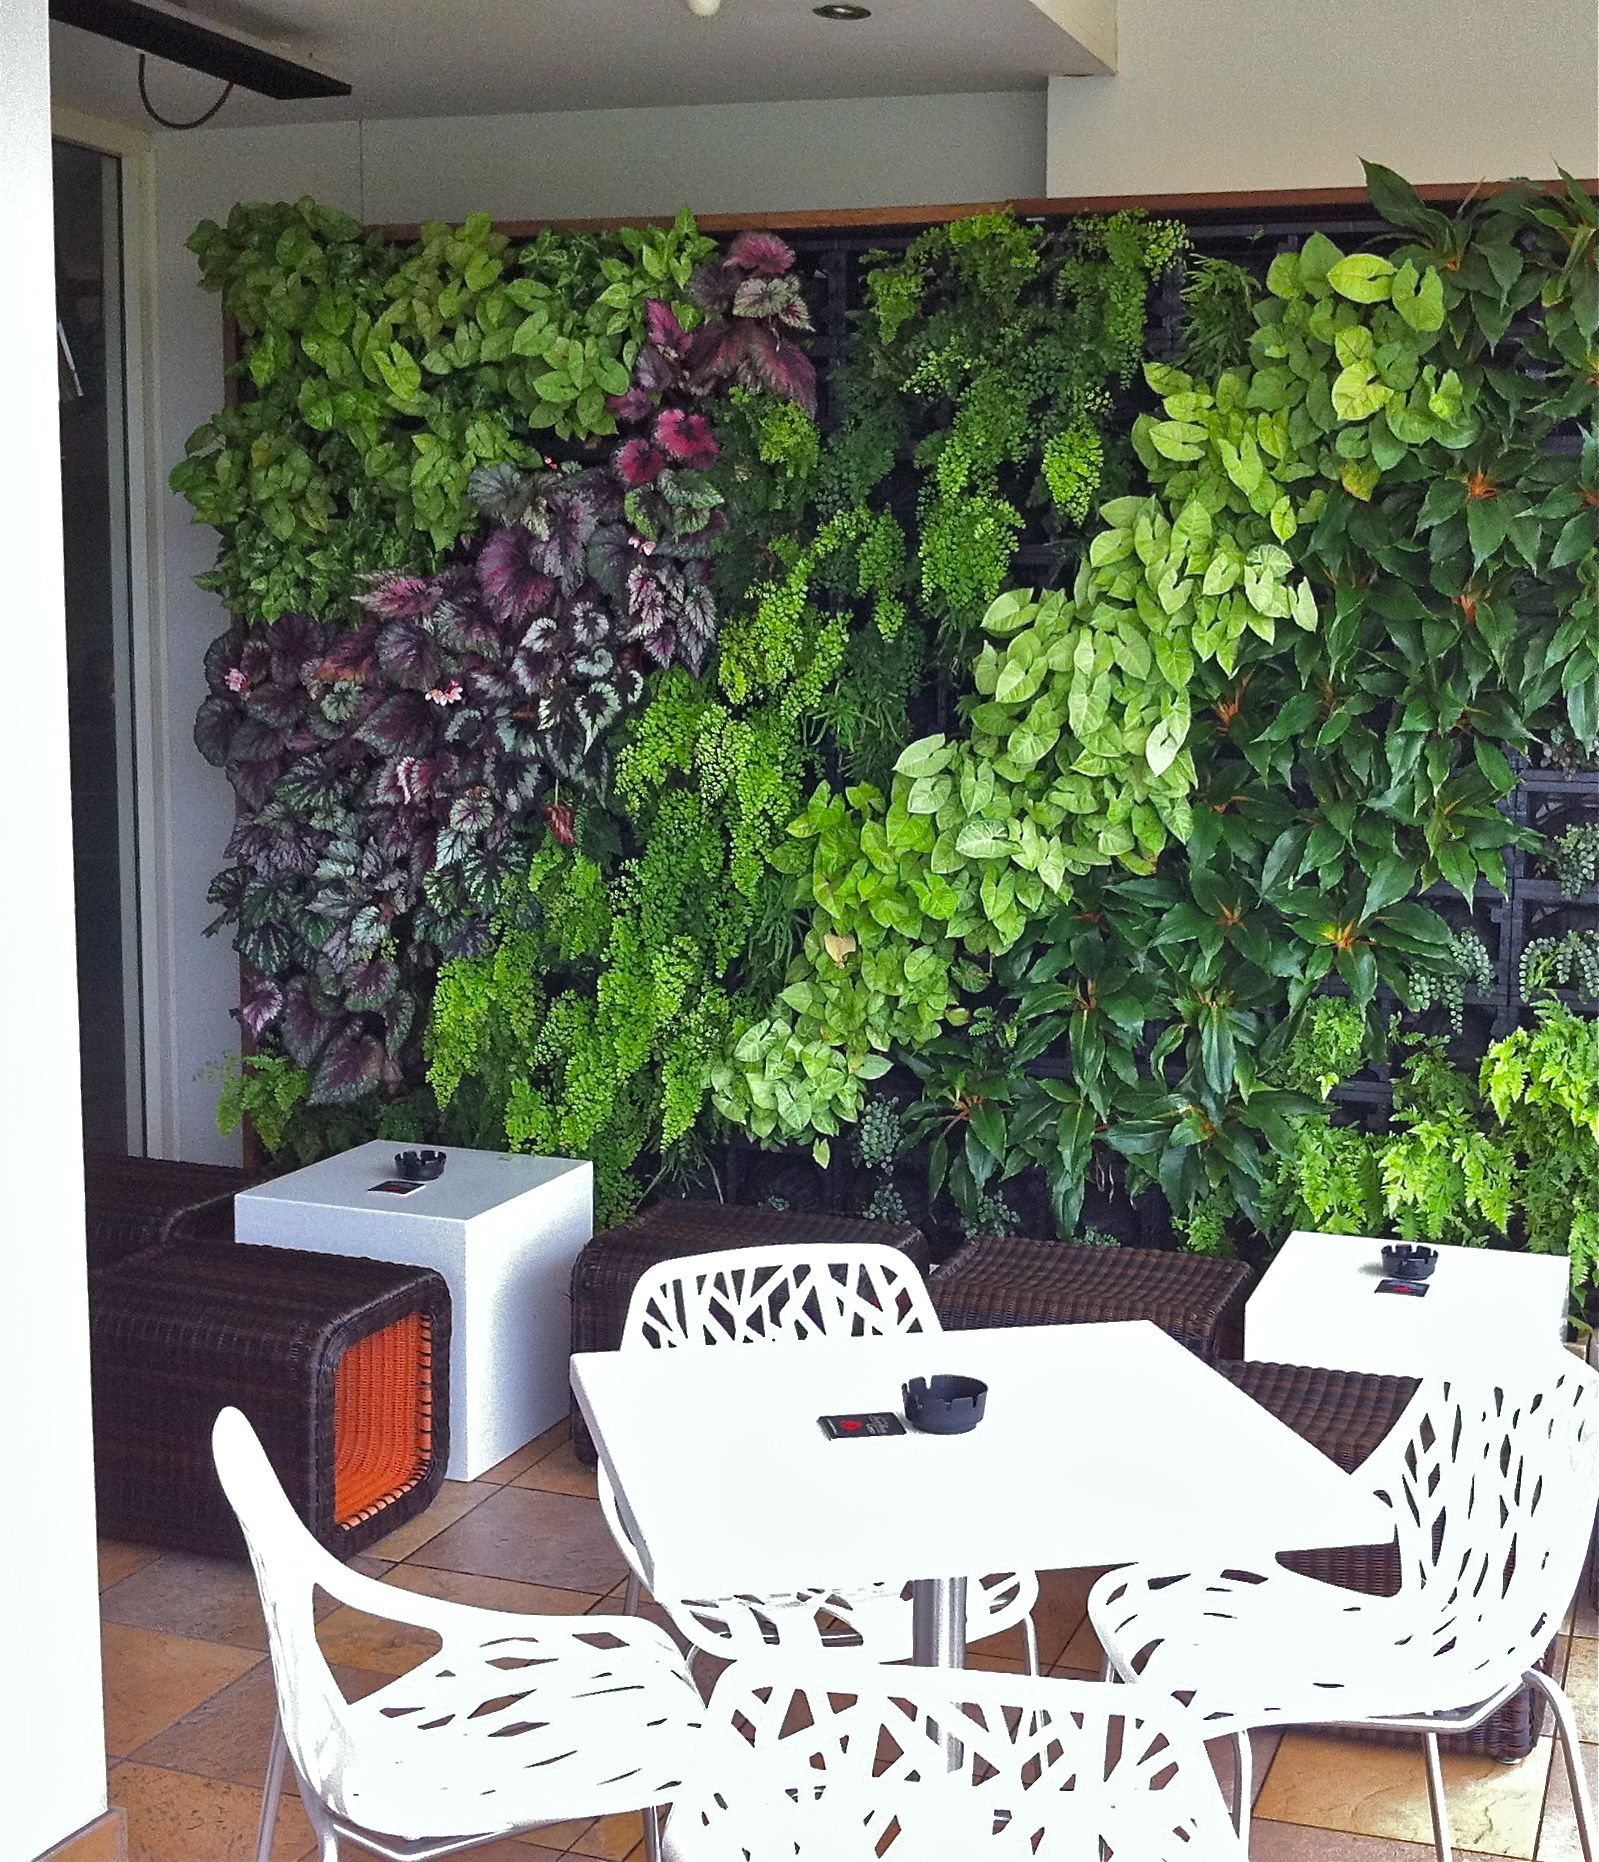 Green wall garden green roof garden vertical garden Herb garden wall ideas